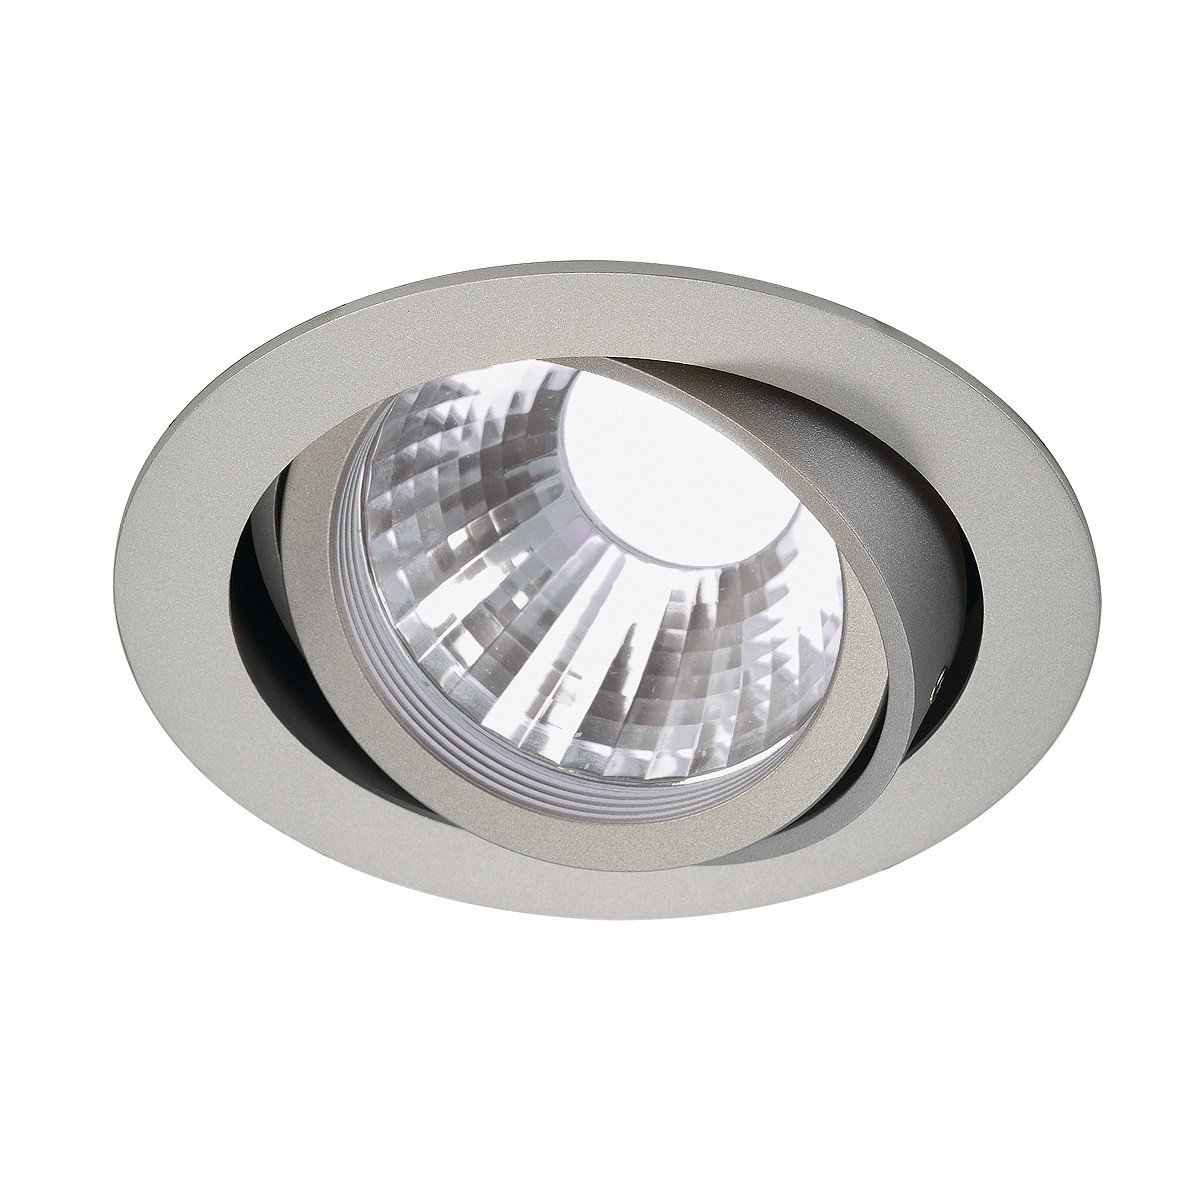 SLV New Tria LED Disk Downlight, Rund, 4000 K, 60 Grad, silbergrau 113574